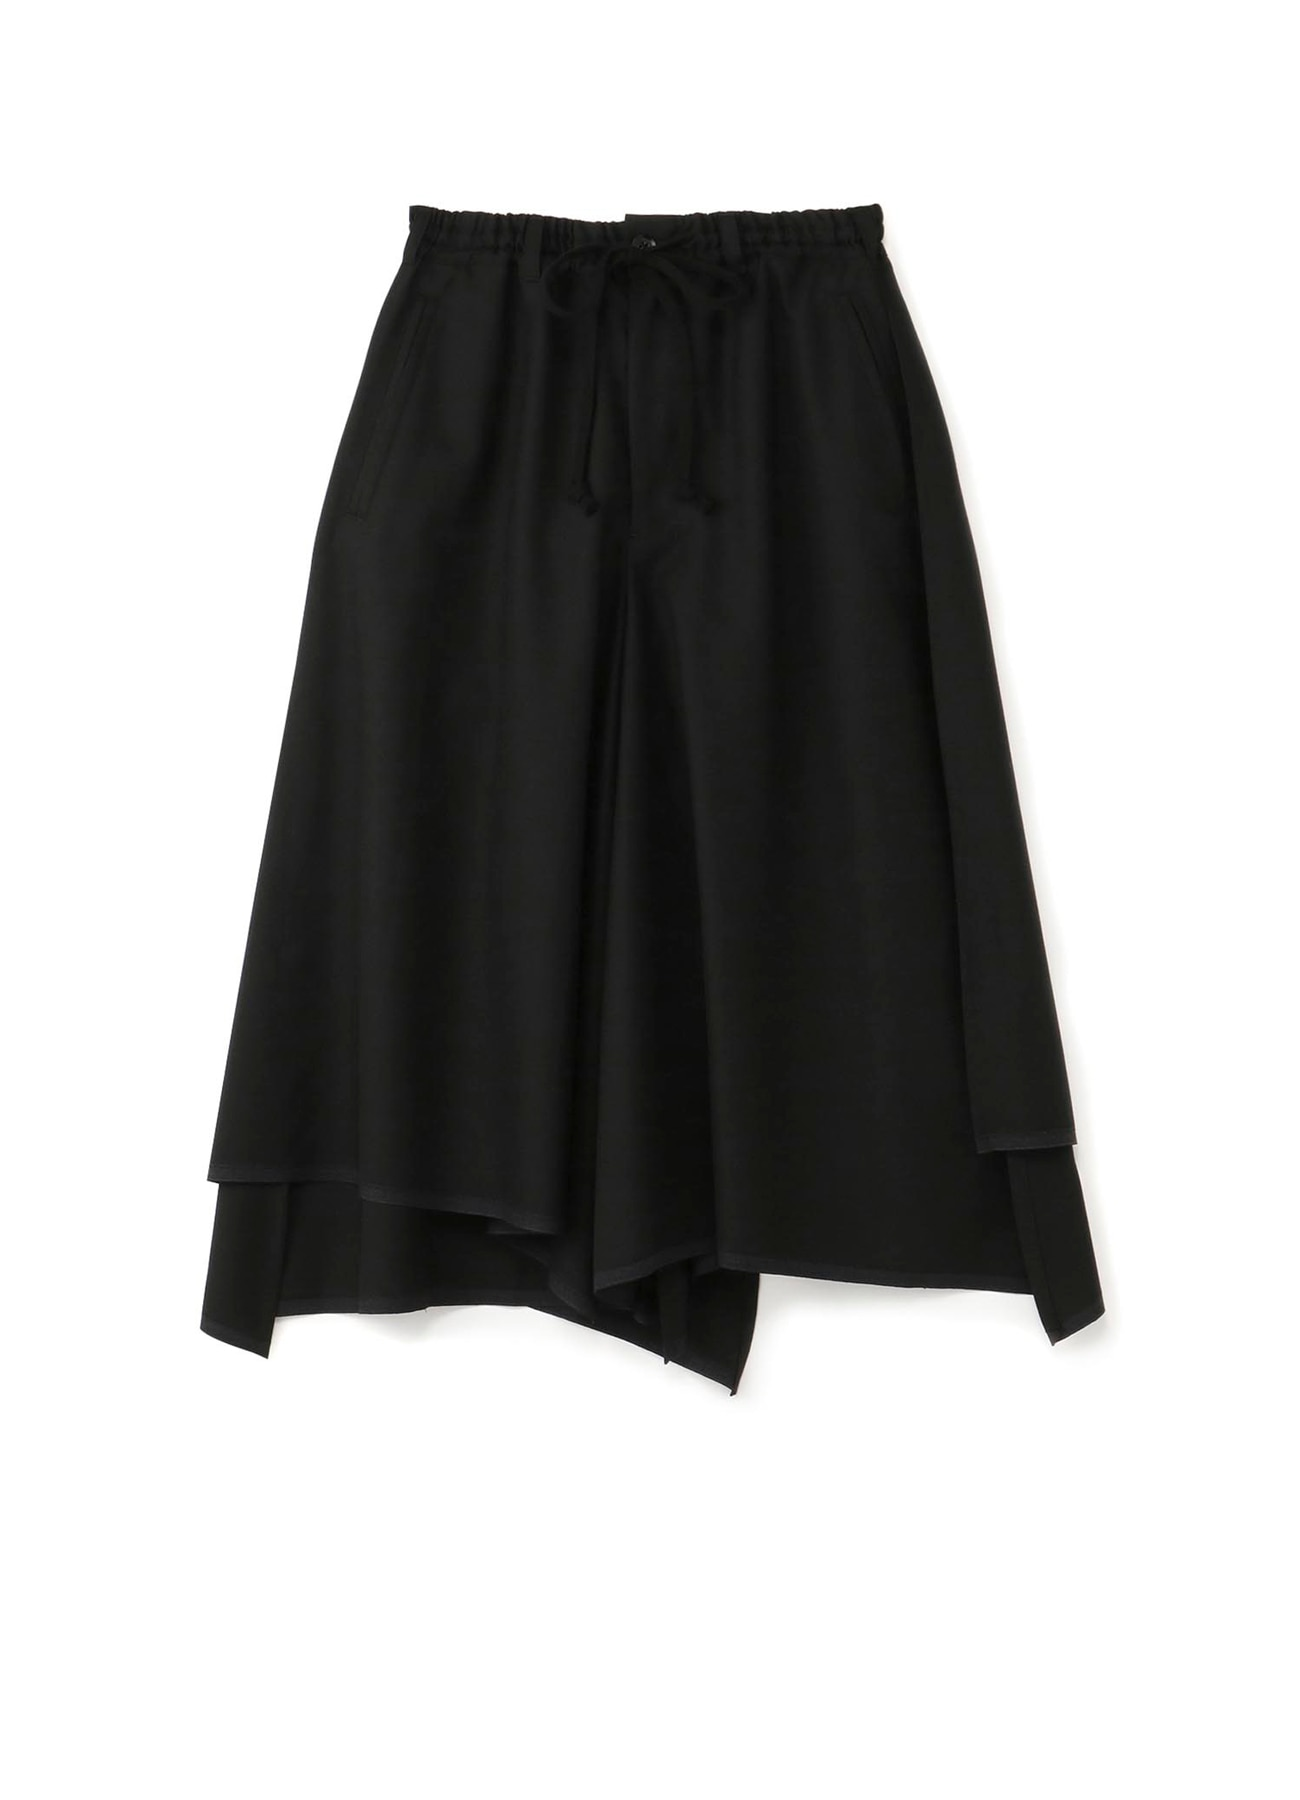 T / W_ gaberdine Pants Skirt